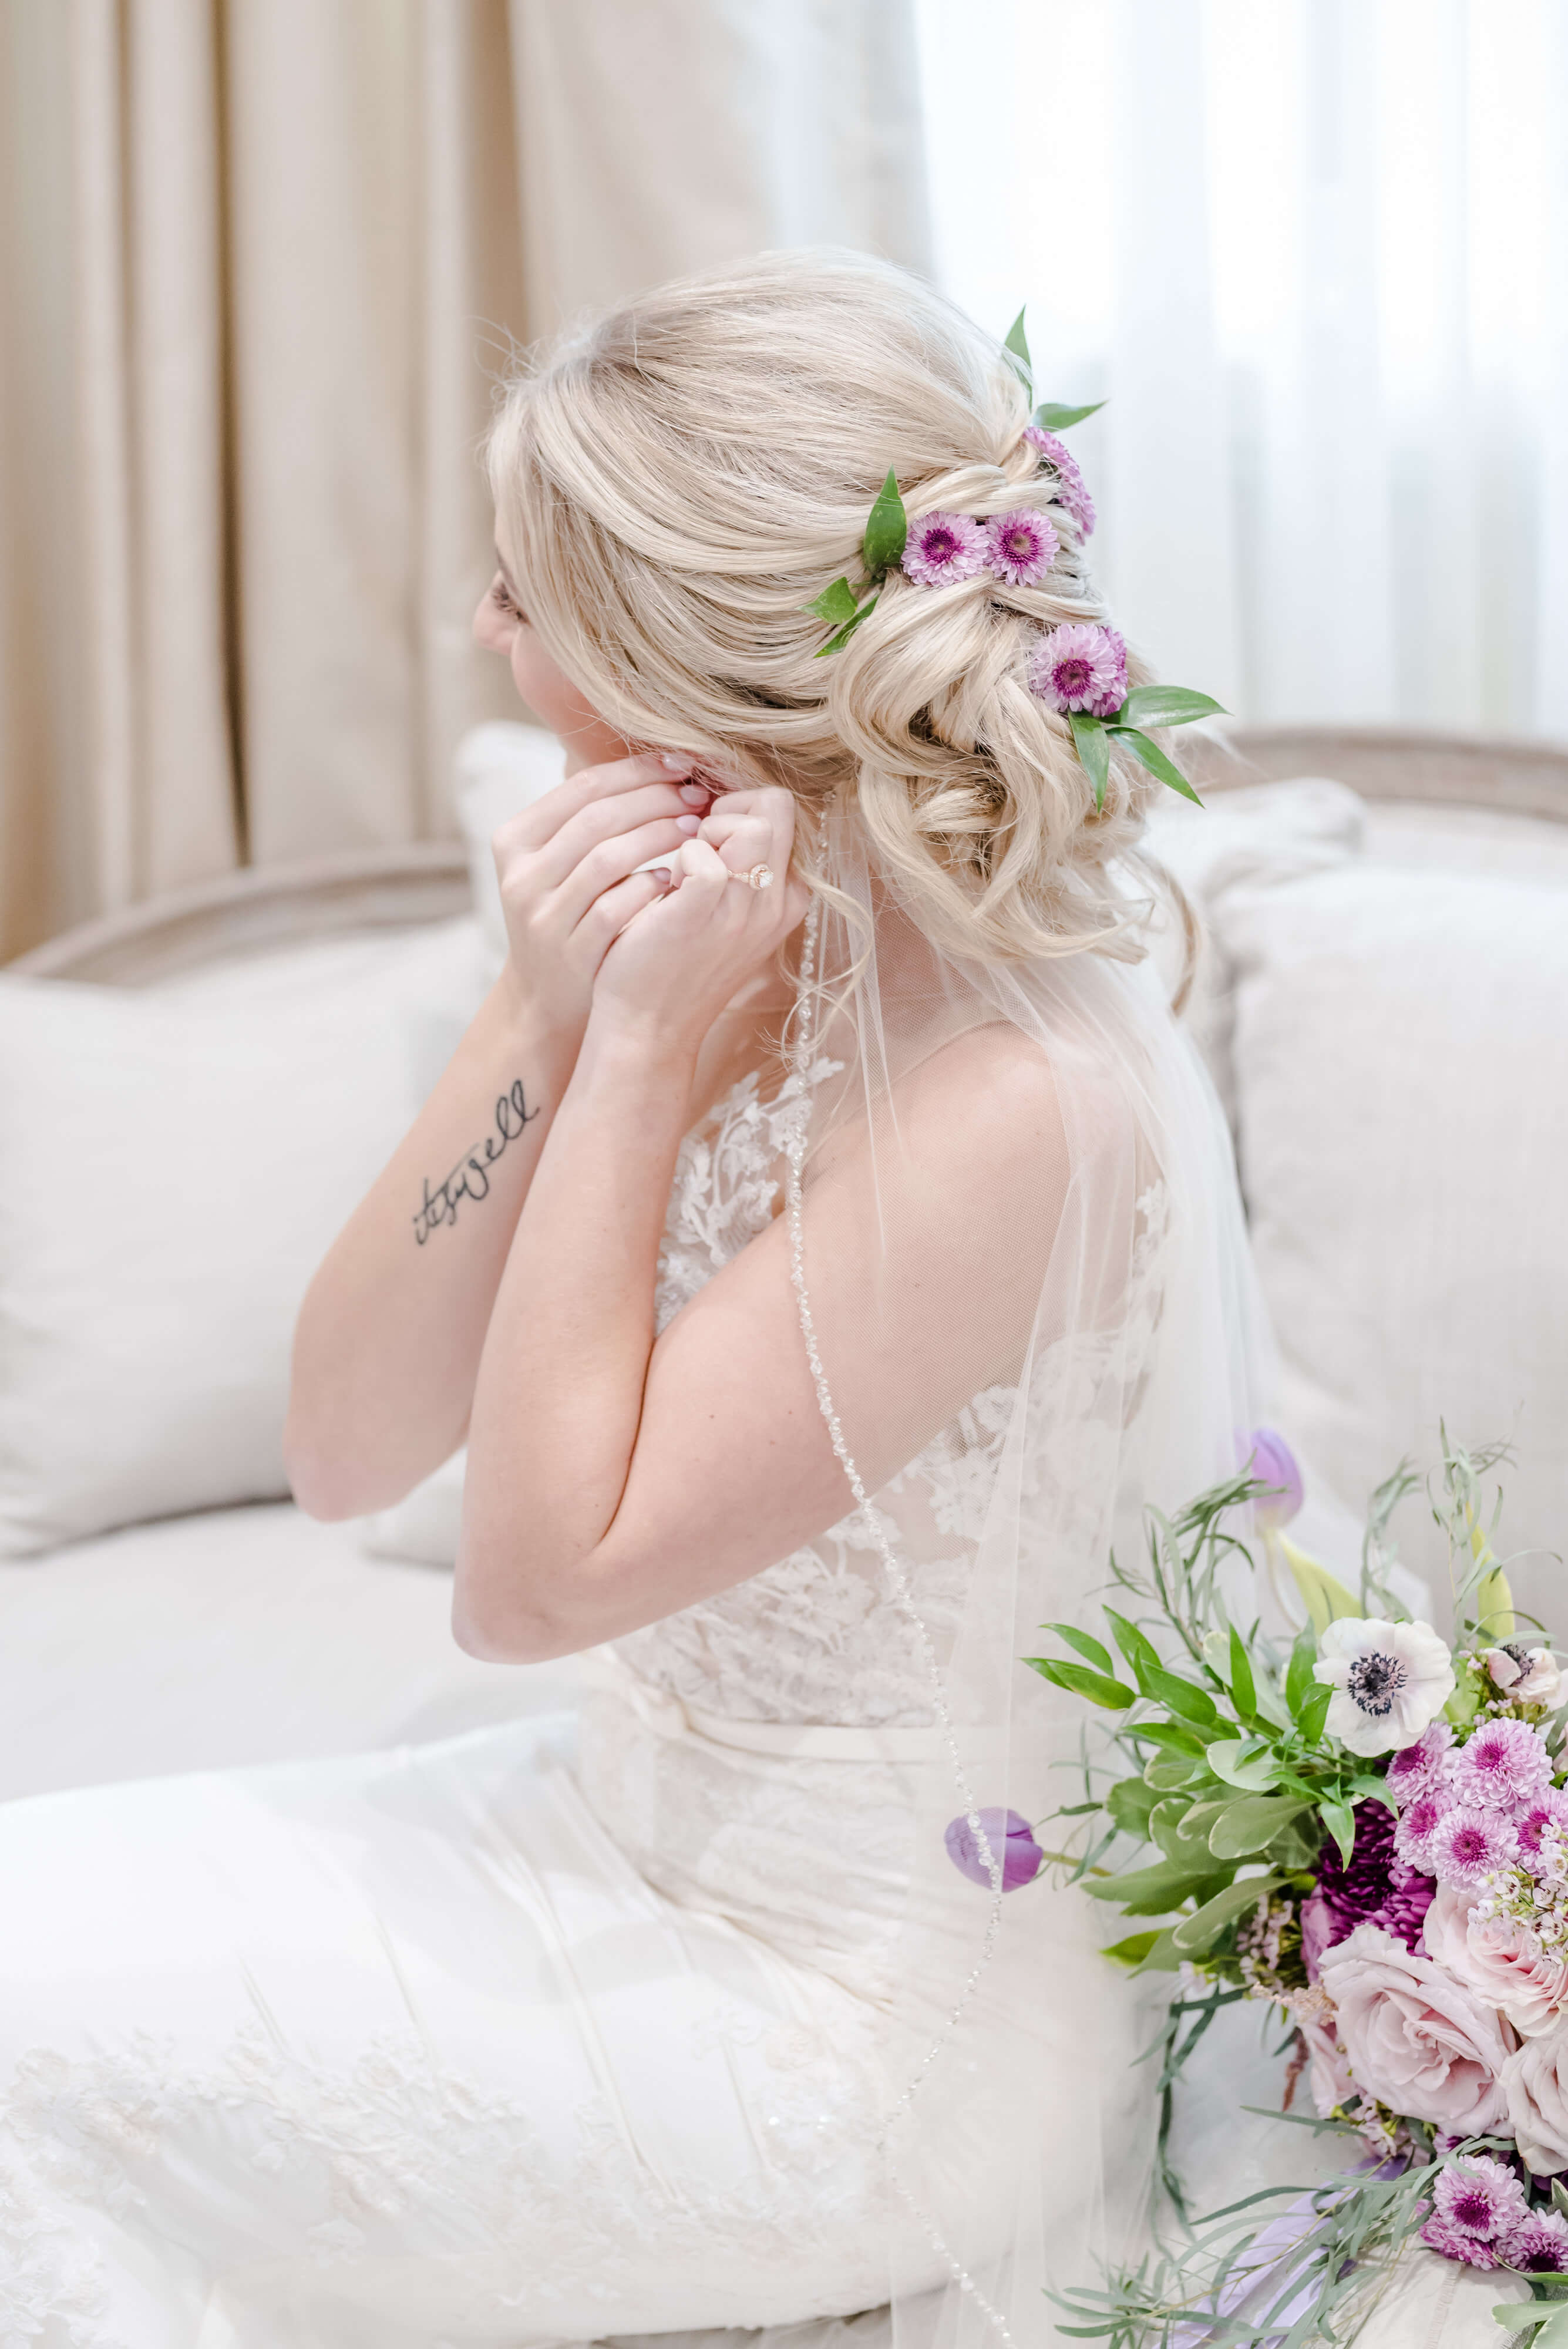 purple bridal florals for bouquet and hair, bride getting ready